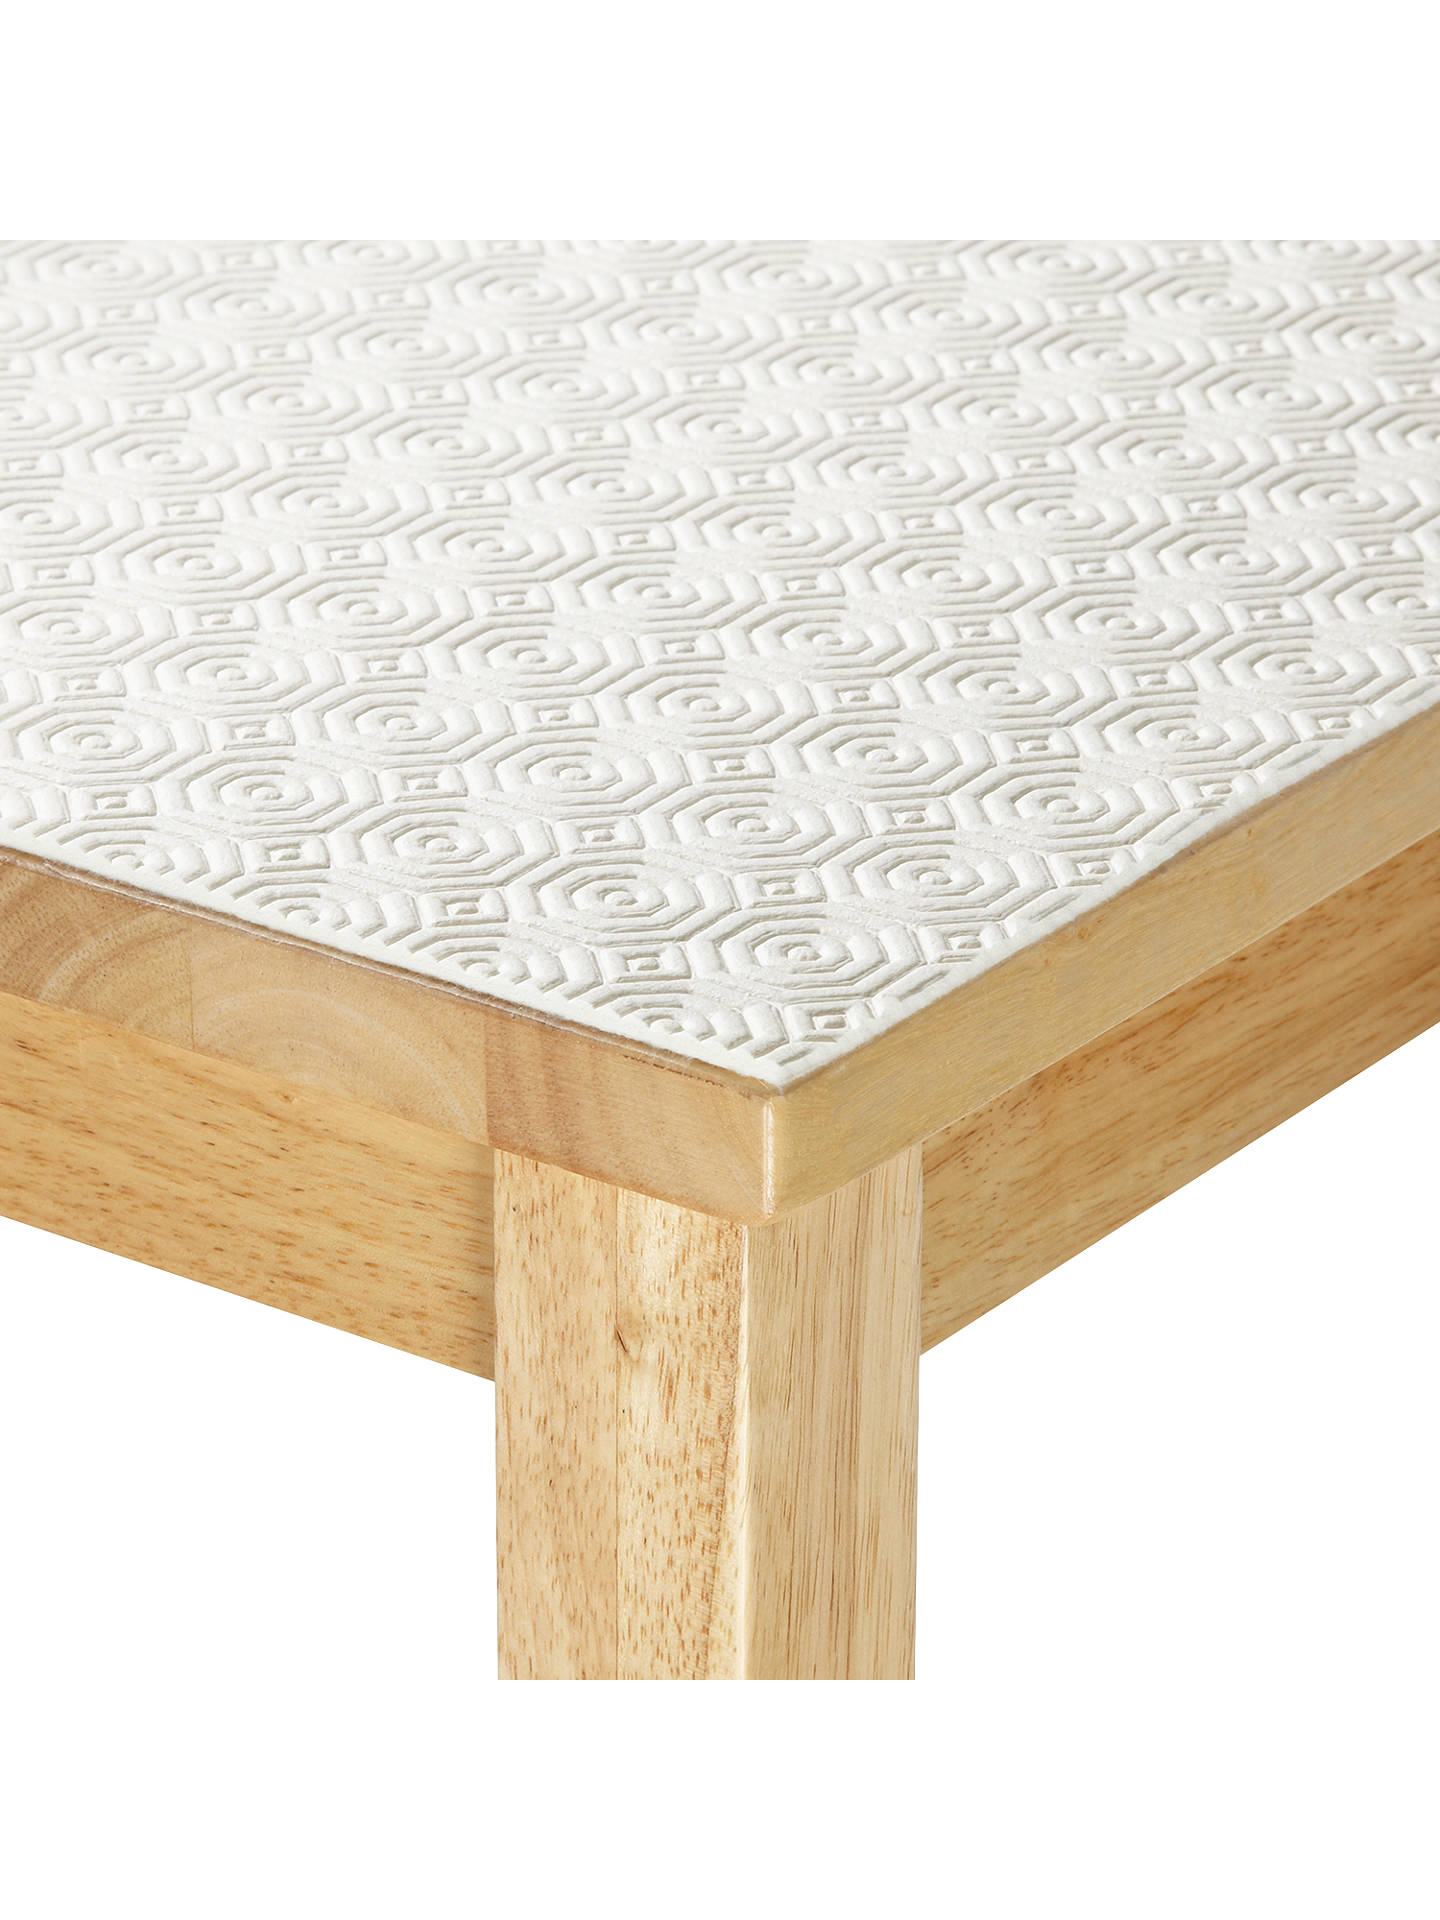 BuyJohn Lewis U0026 Partners Table Protector Fabric, White, W140cm Online At  Johnlewis.com